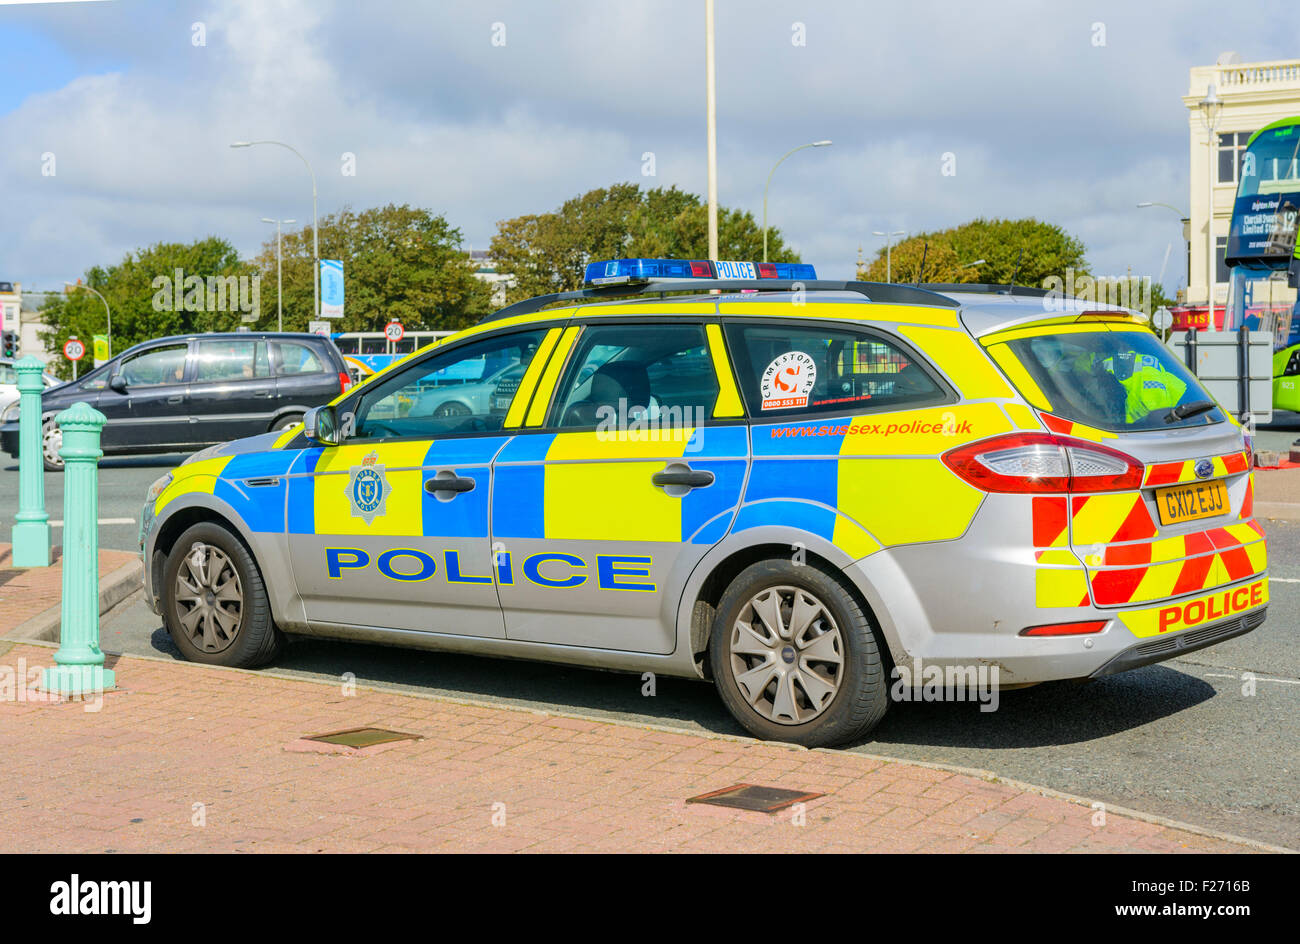 Sussex Police car parked by the roadside in Brighton, East Sussex, England, UK. - Stock Image